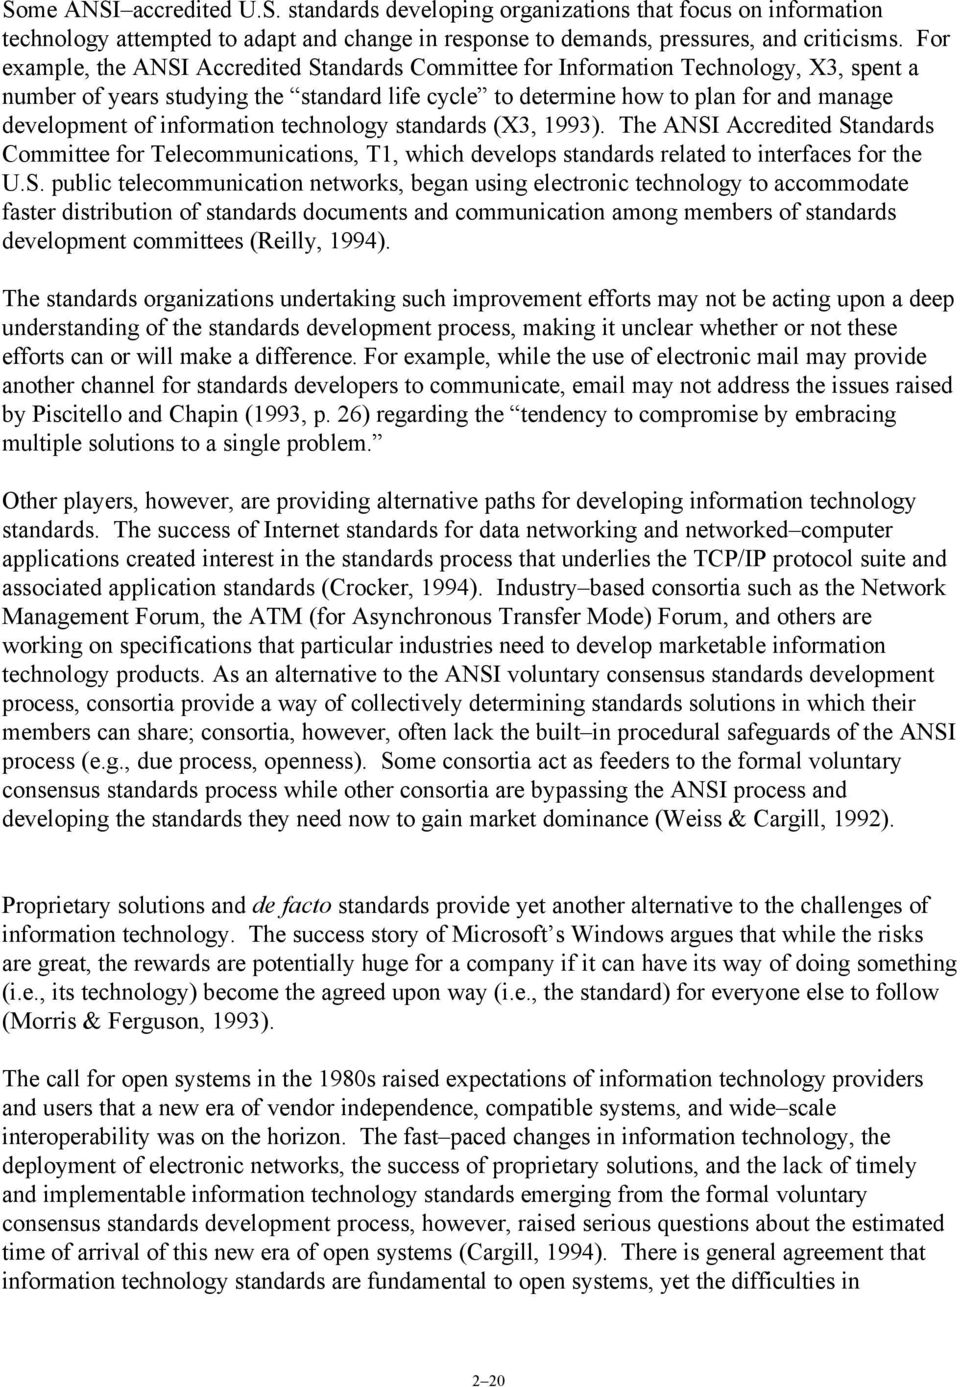 information technology standards (X3, 1993). The ANSI